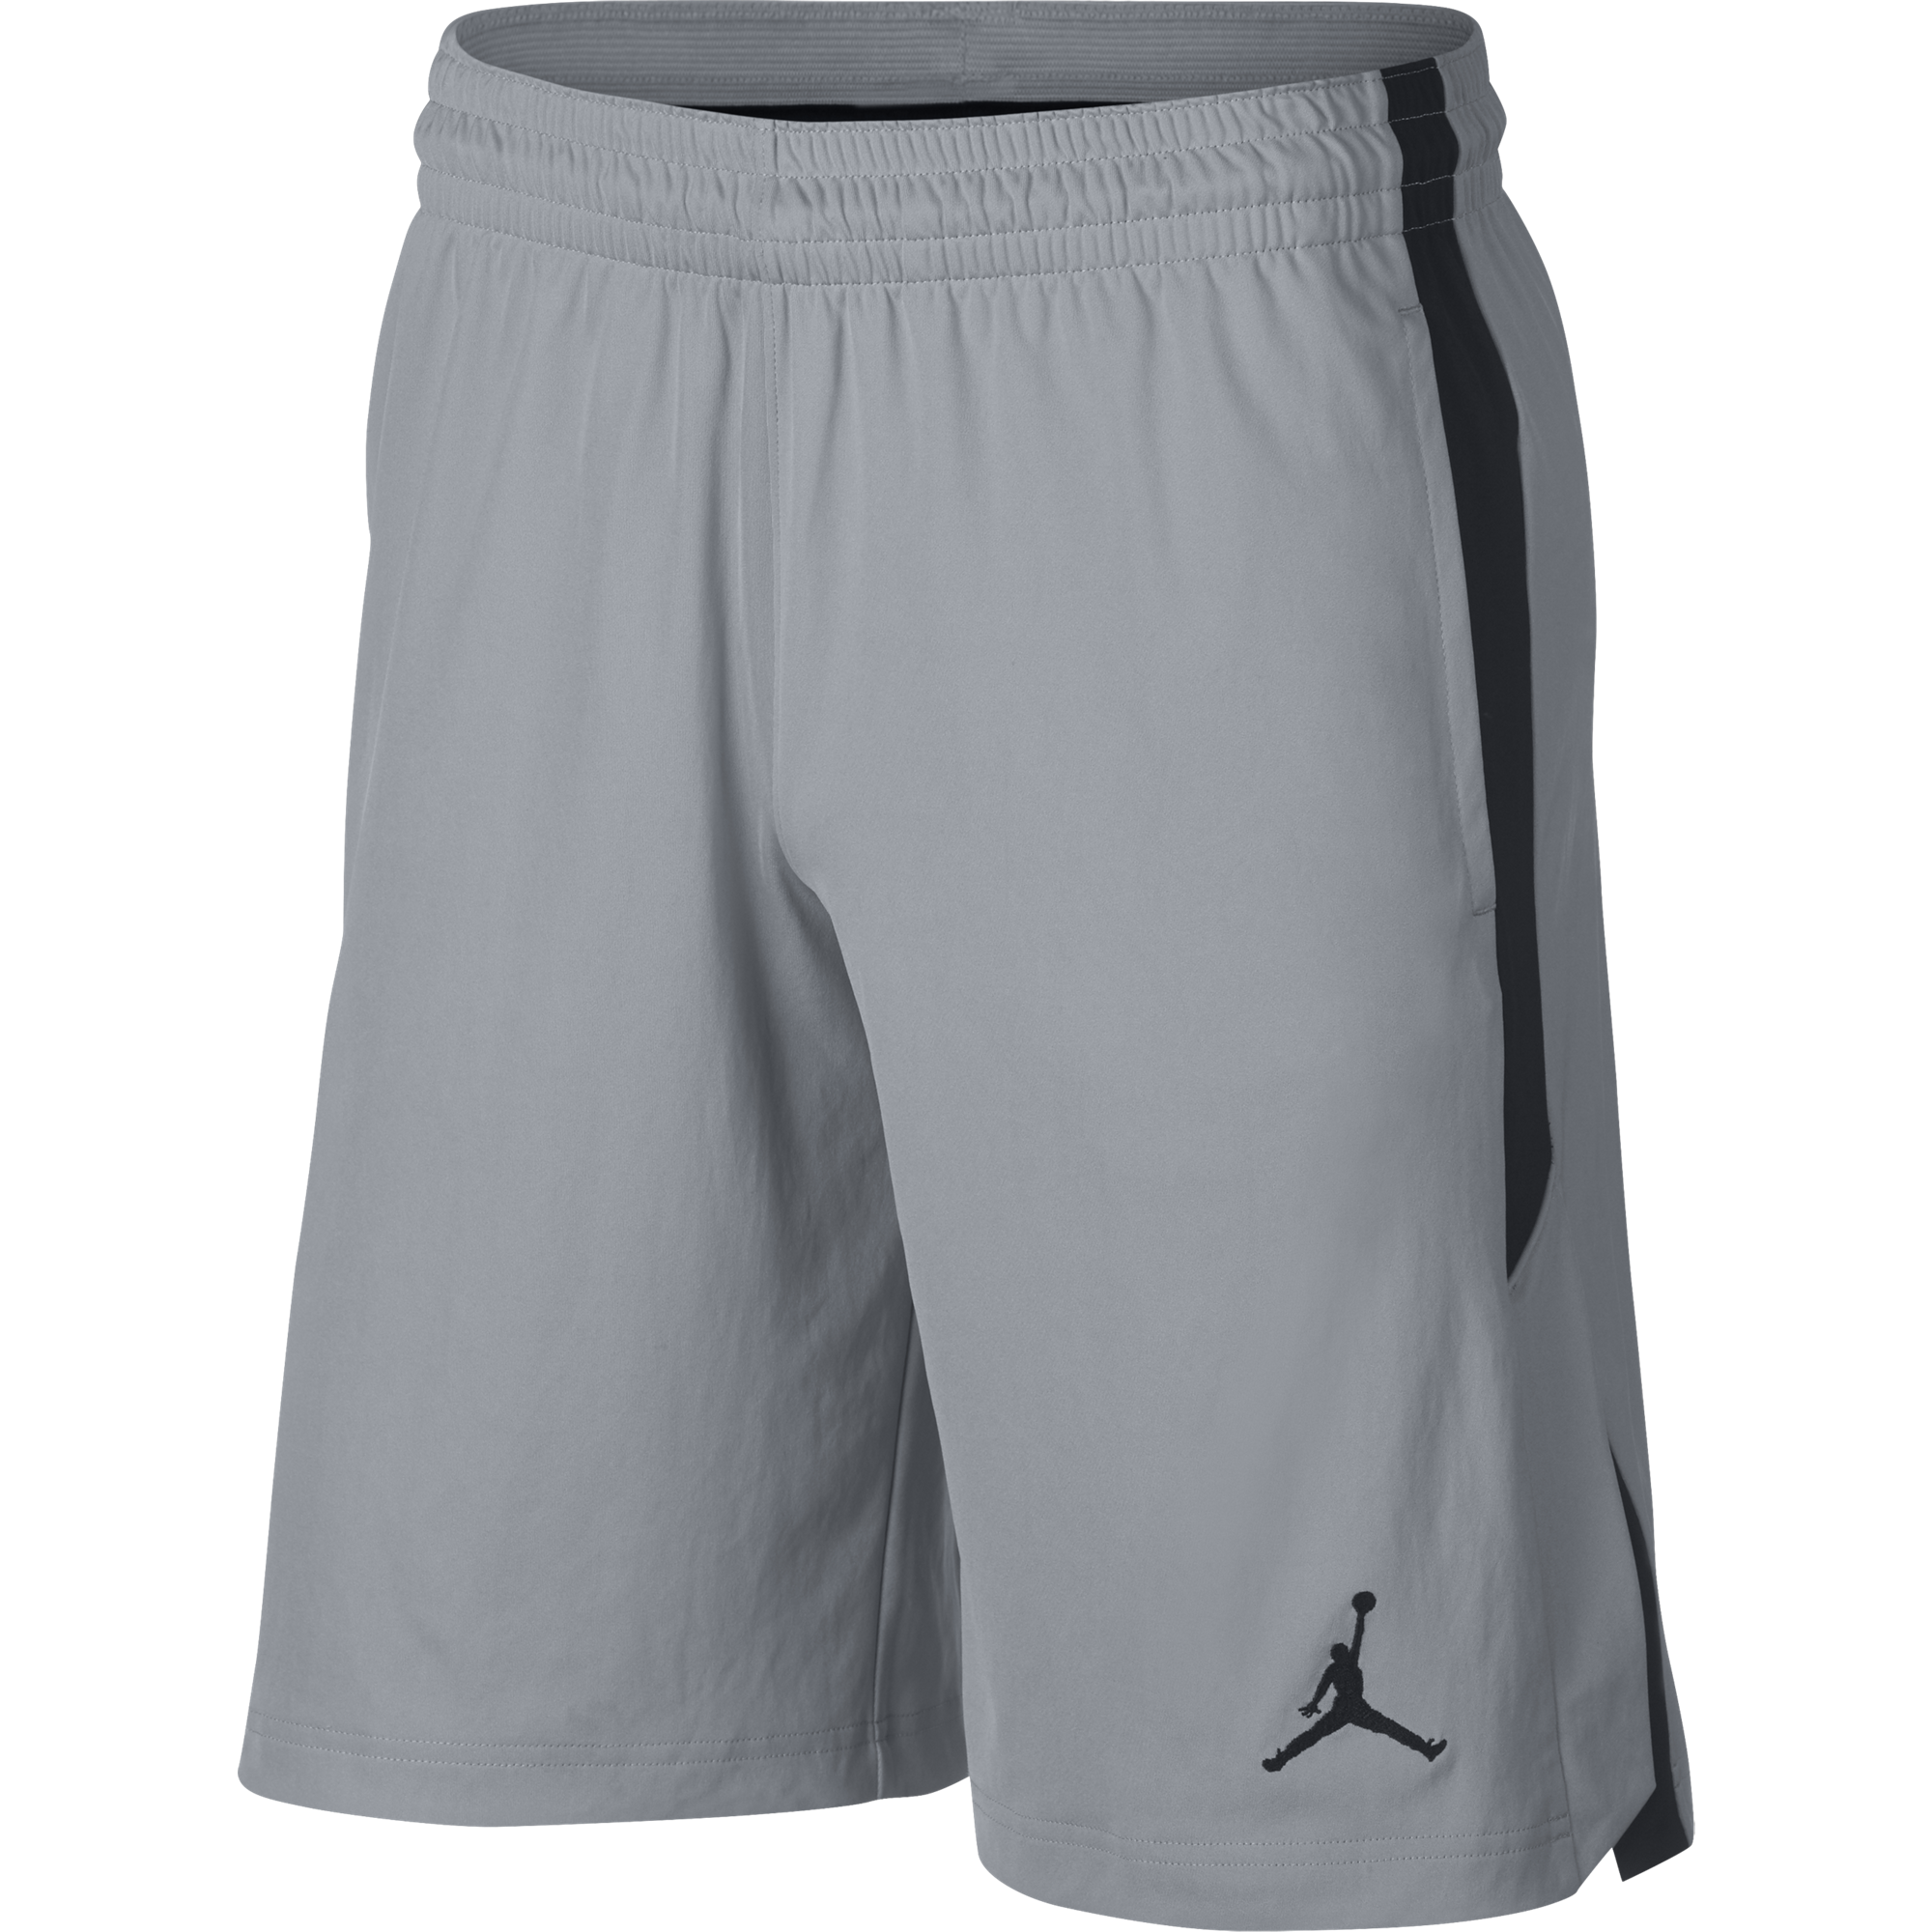 5b6bda9c8d57 AIR JORDAN DRY-FIT 23 ALPHA KNIT TRAINING SHORTS for £30.00 ...